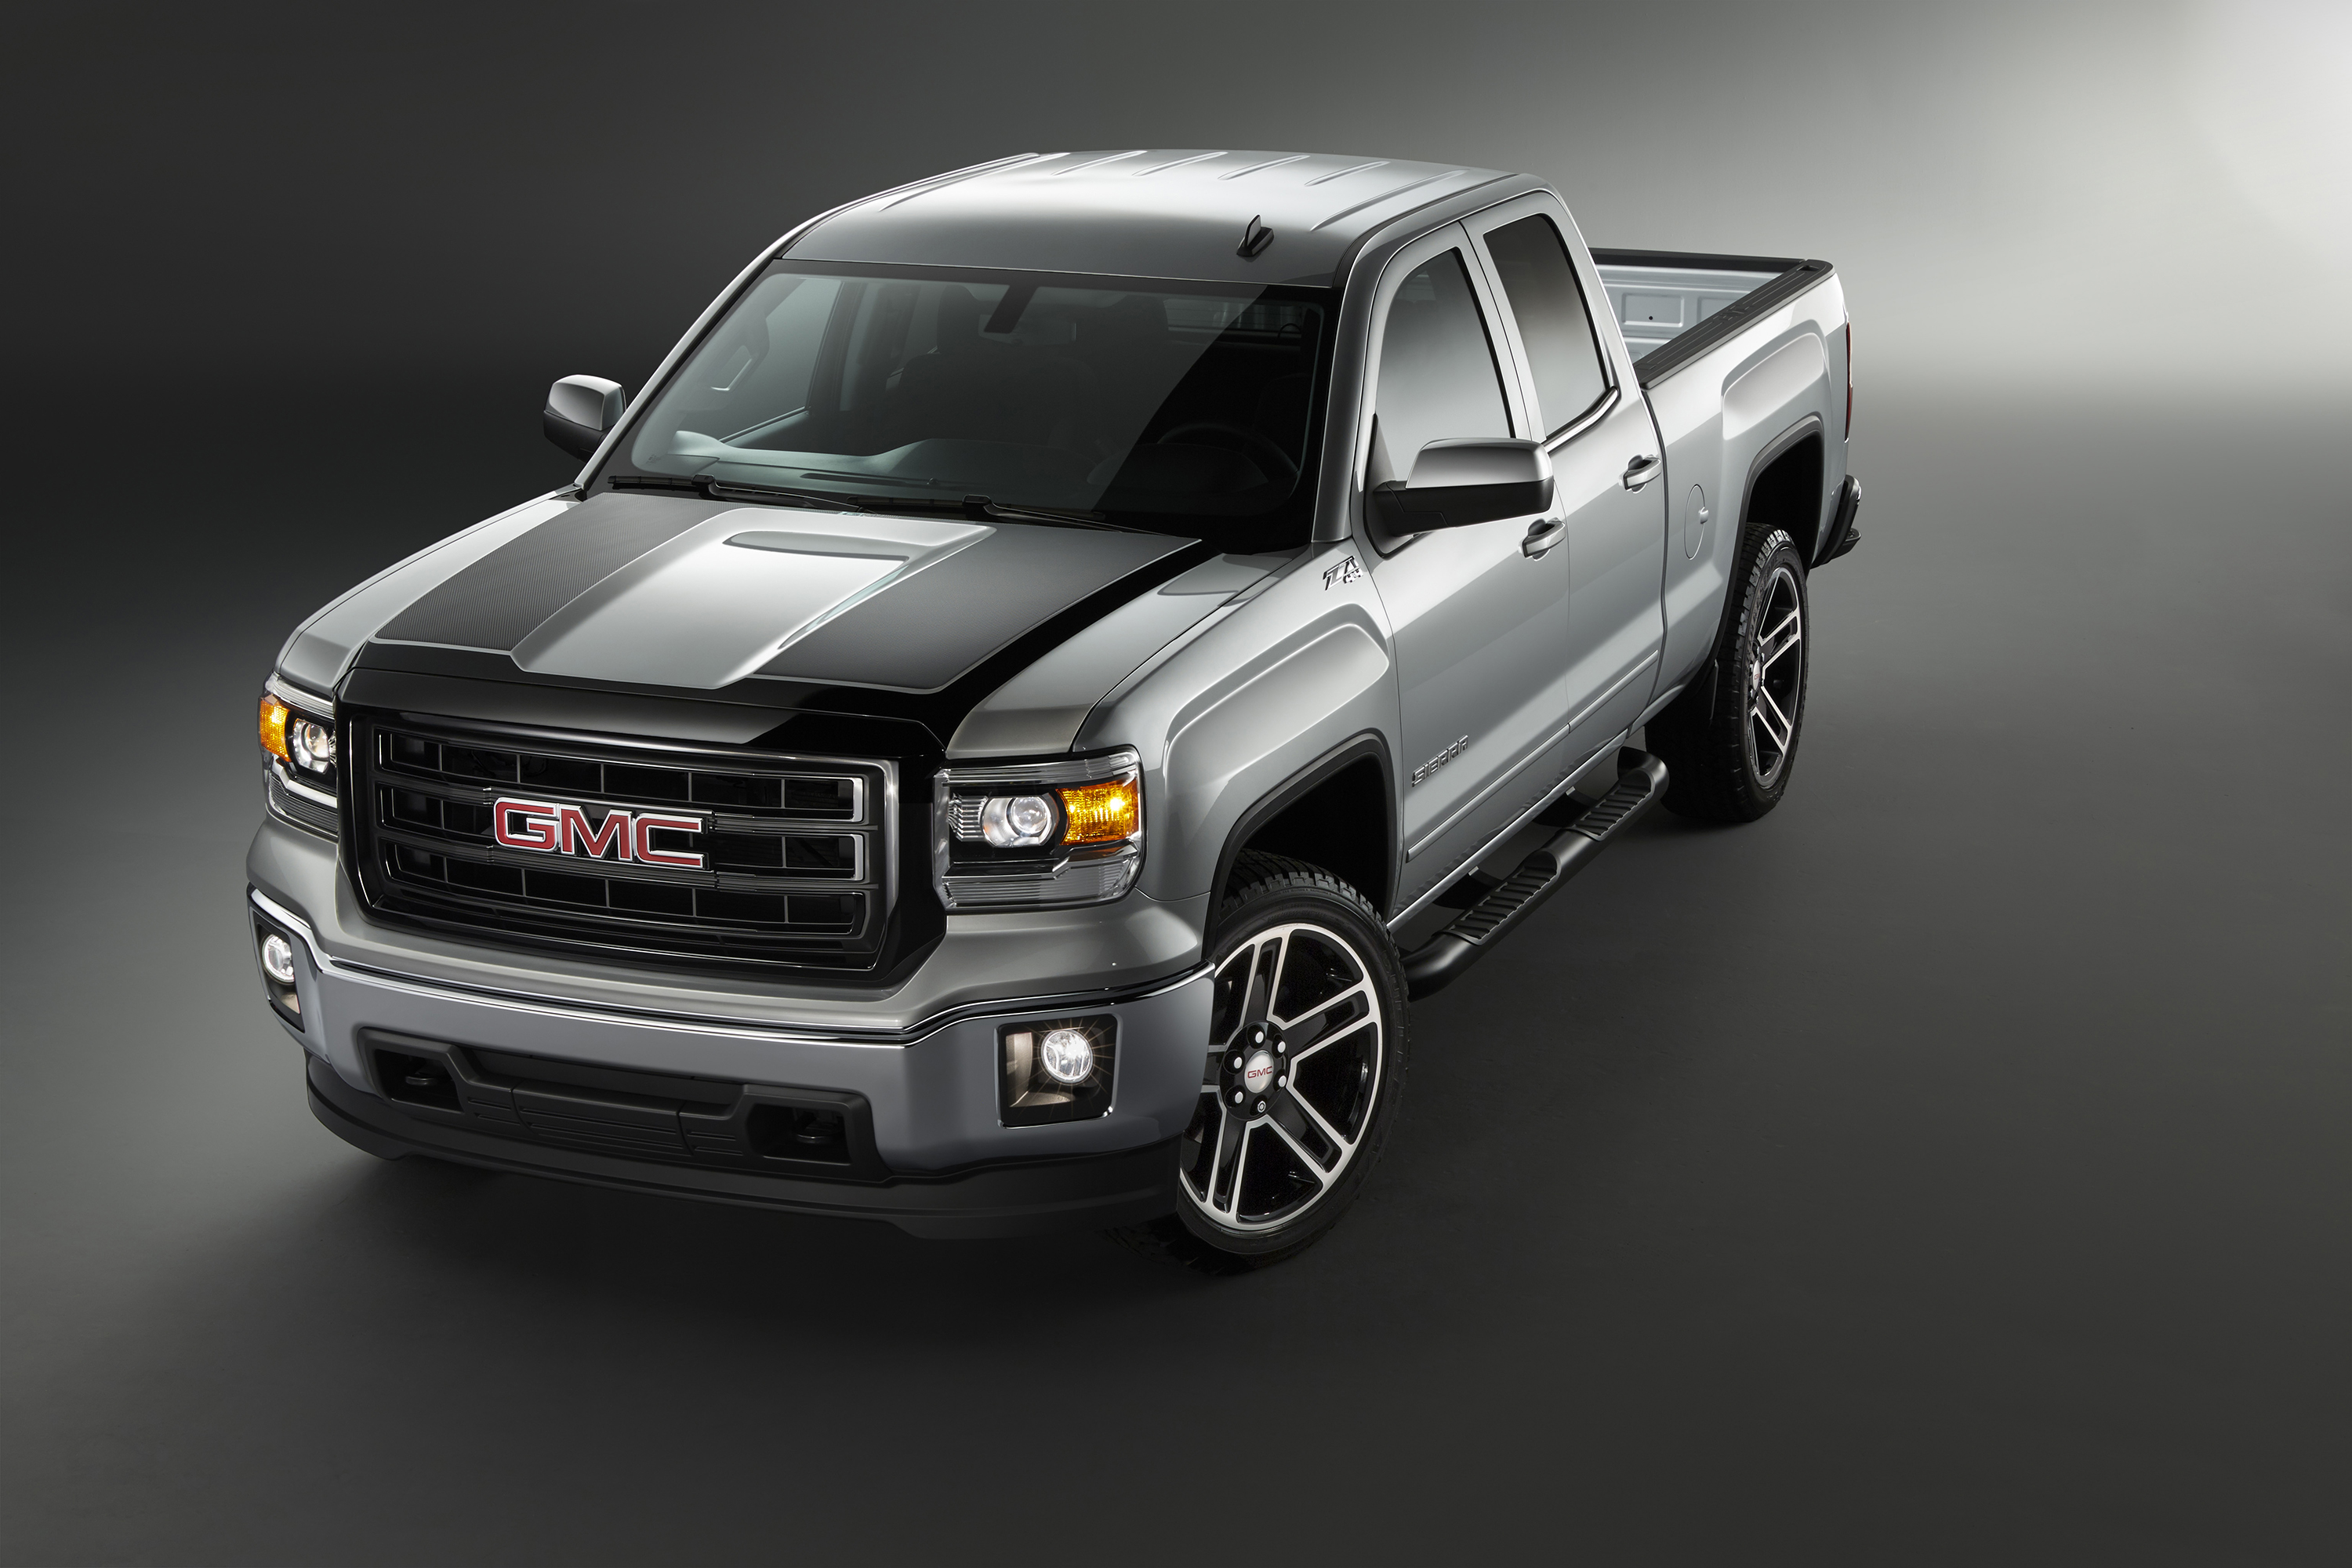 2015 Sierra Carbon Editions Add Sporty Looks Substance